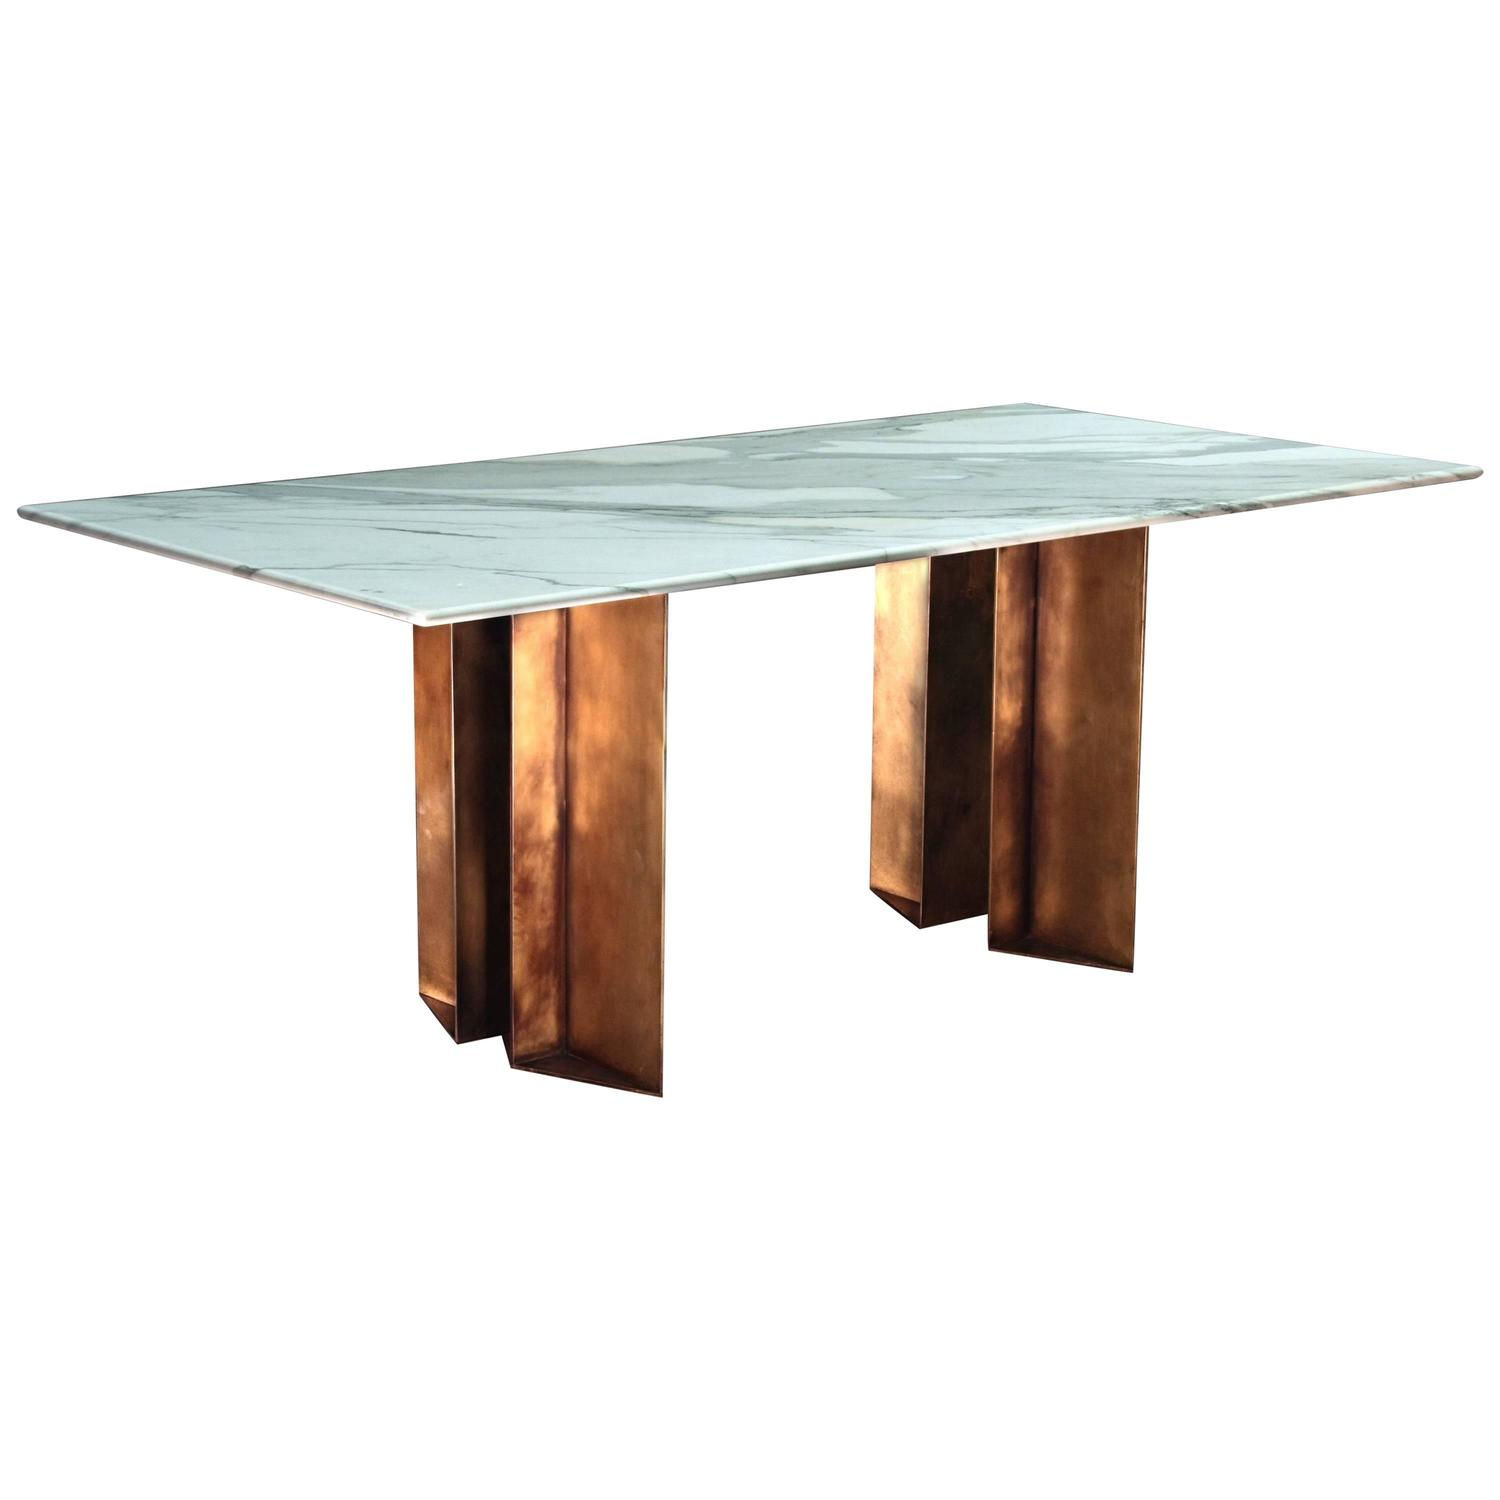 half moon dining table. the metropolis marble and brass dining table by lind almond for novocastria half moon